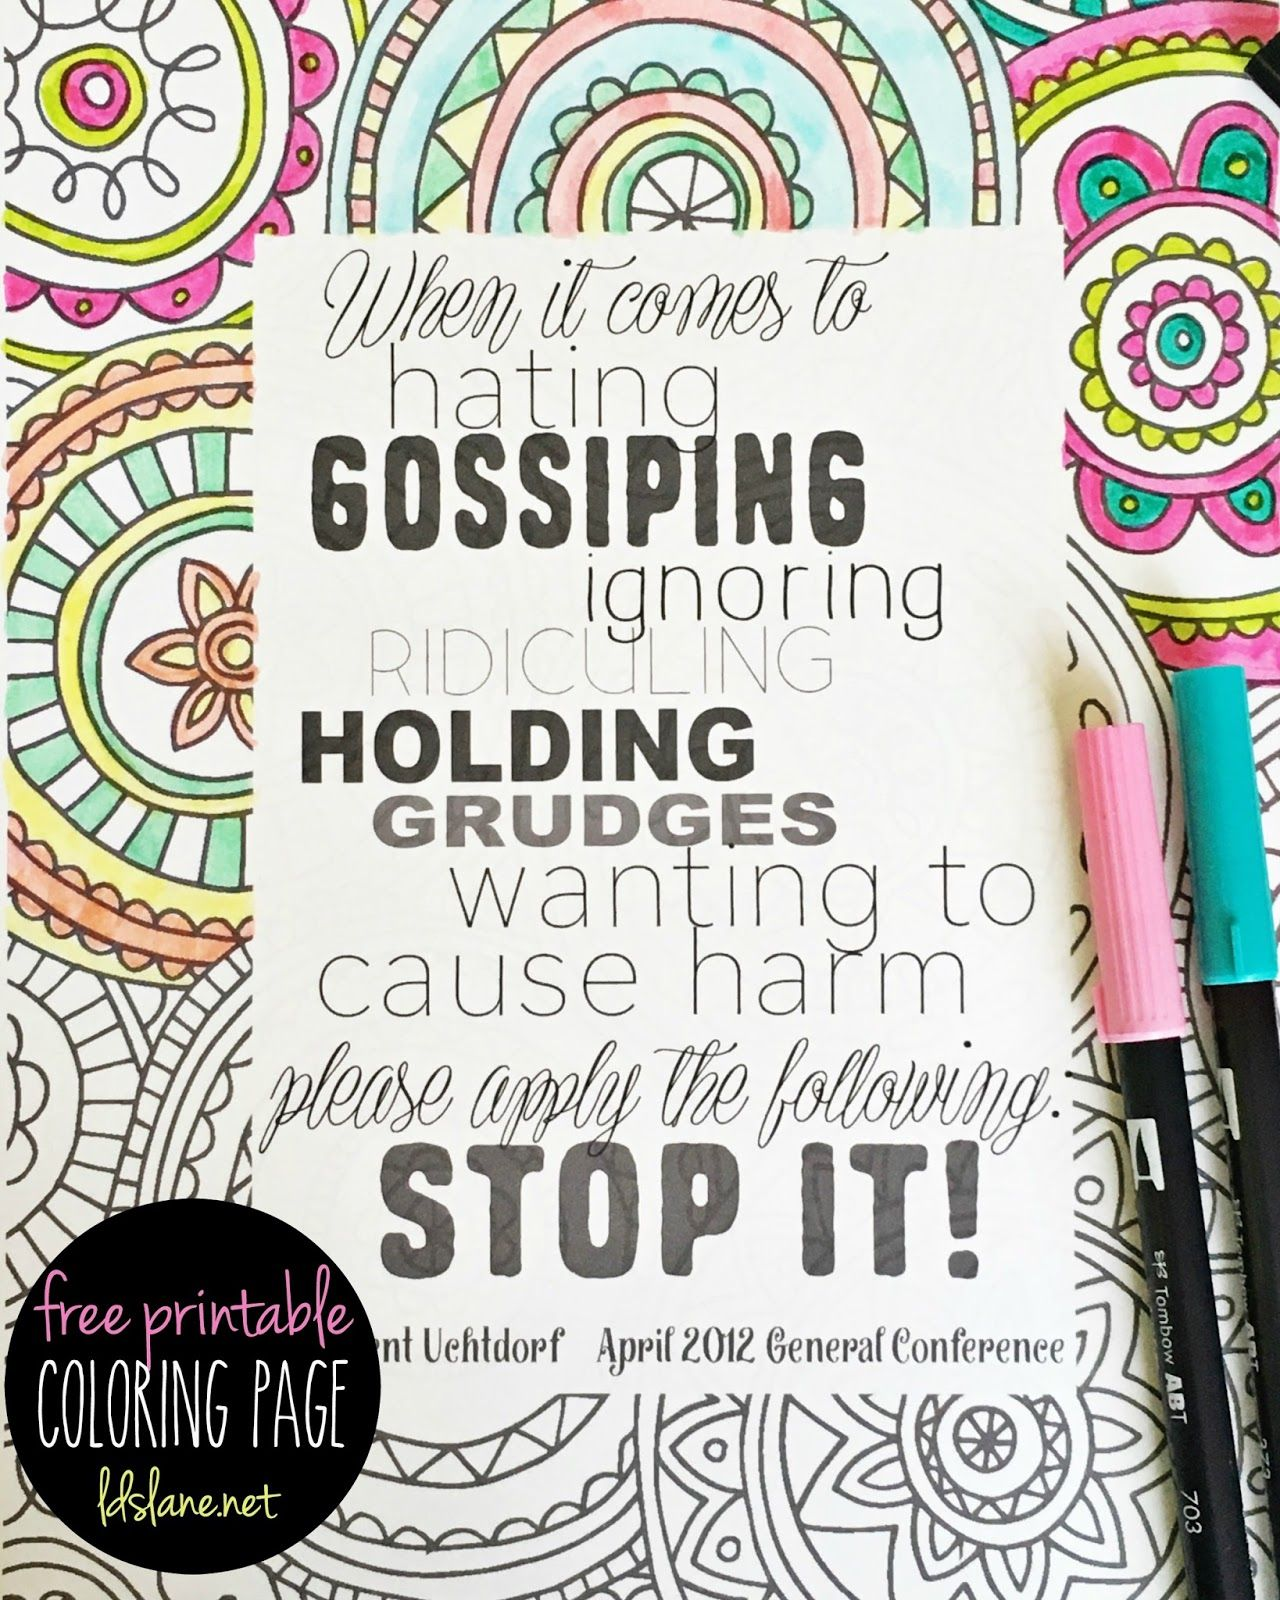 Free coloring pages lds - Lds Quote Coloring Page Free Printable Ldslane Net